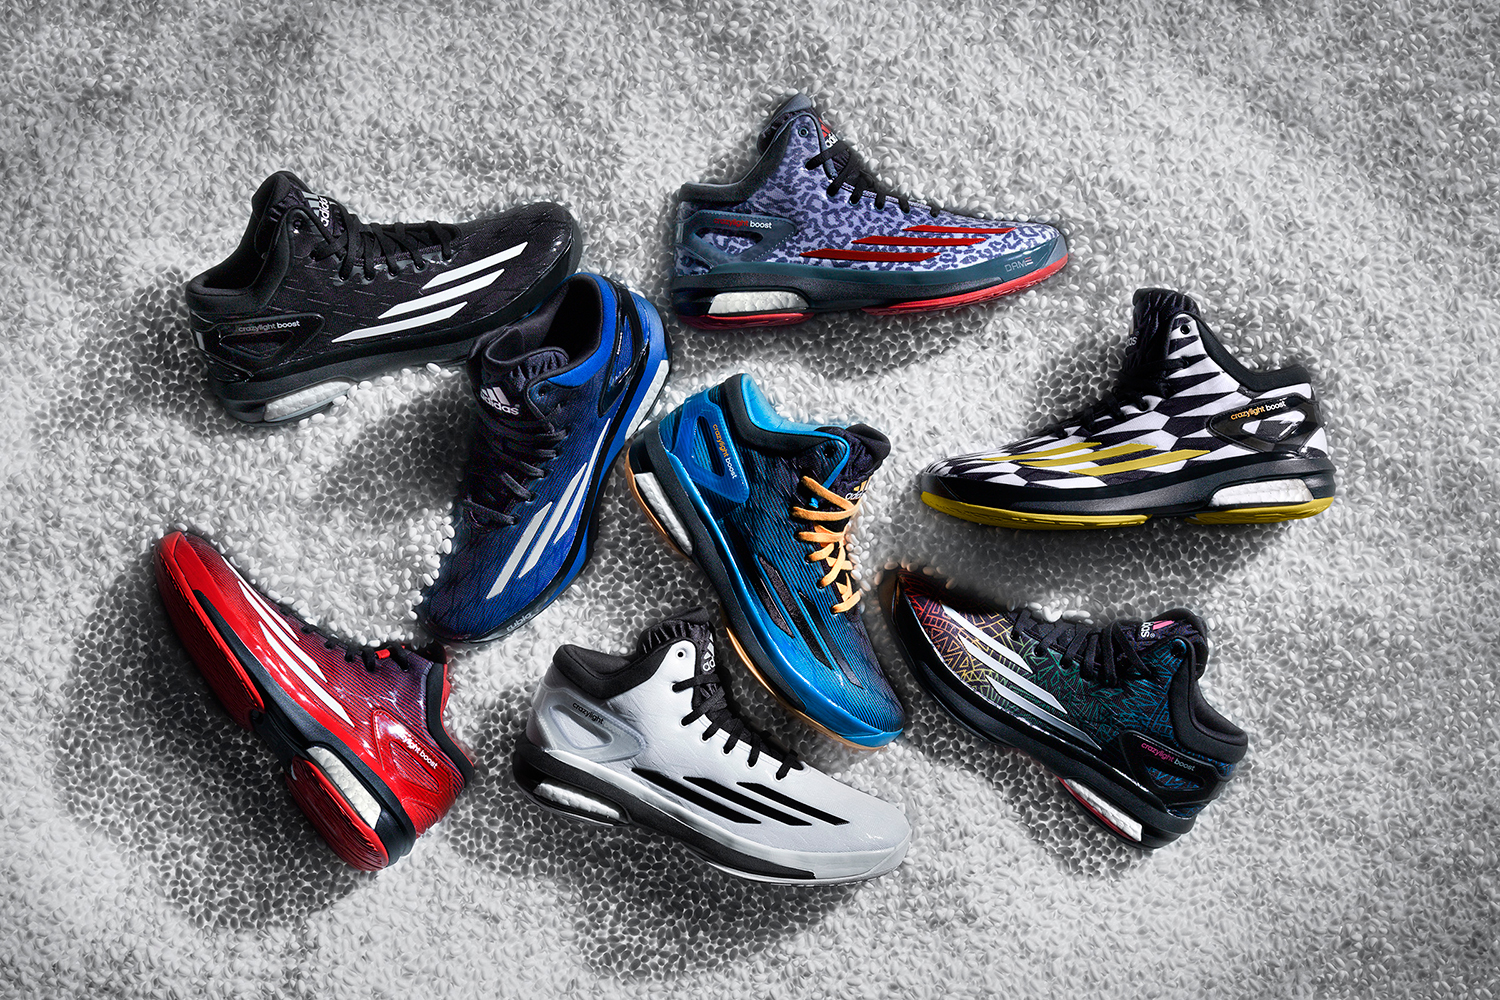 At 11.6 ounces, the Crazylight Boost lives up to its name, but still offers ample cushioning by bringing the new adidas cushioning technology to basketball. The Boost system—a new foam layer built by heat-steaming thousands of pea-sized capsules together—plays visually too. And while this Boost technology and the mesh upper help to make this a supremely comfortable shoe, the dynamic coloring options gives the Crazylight Boost plenty of personality.